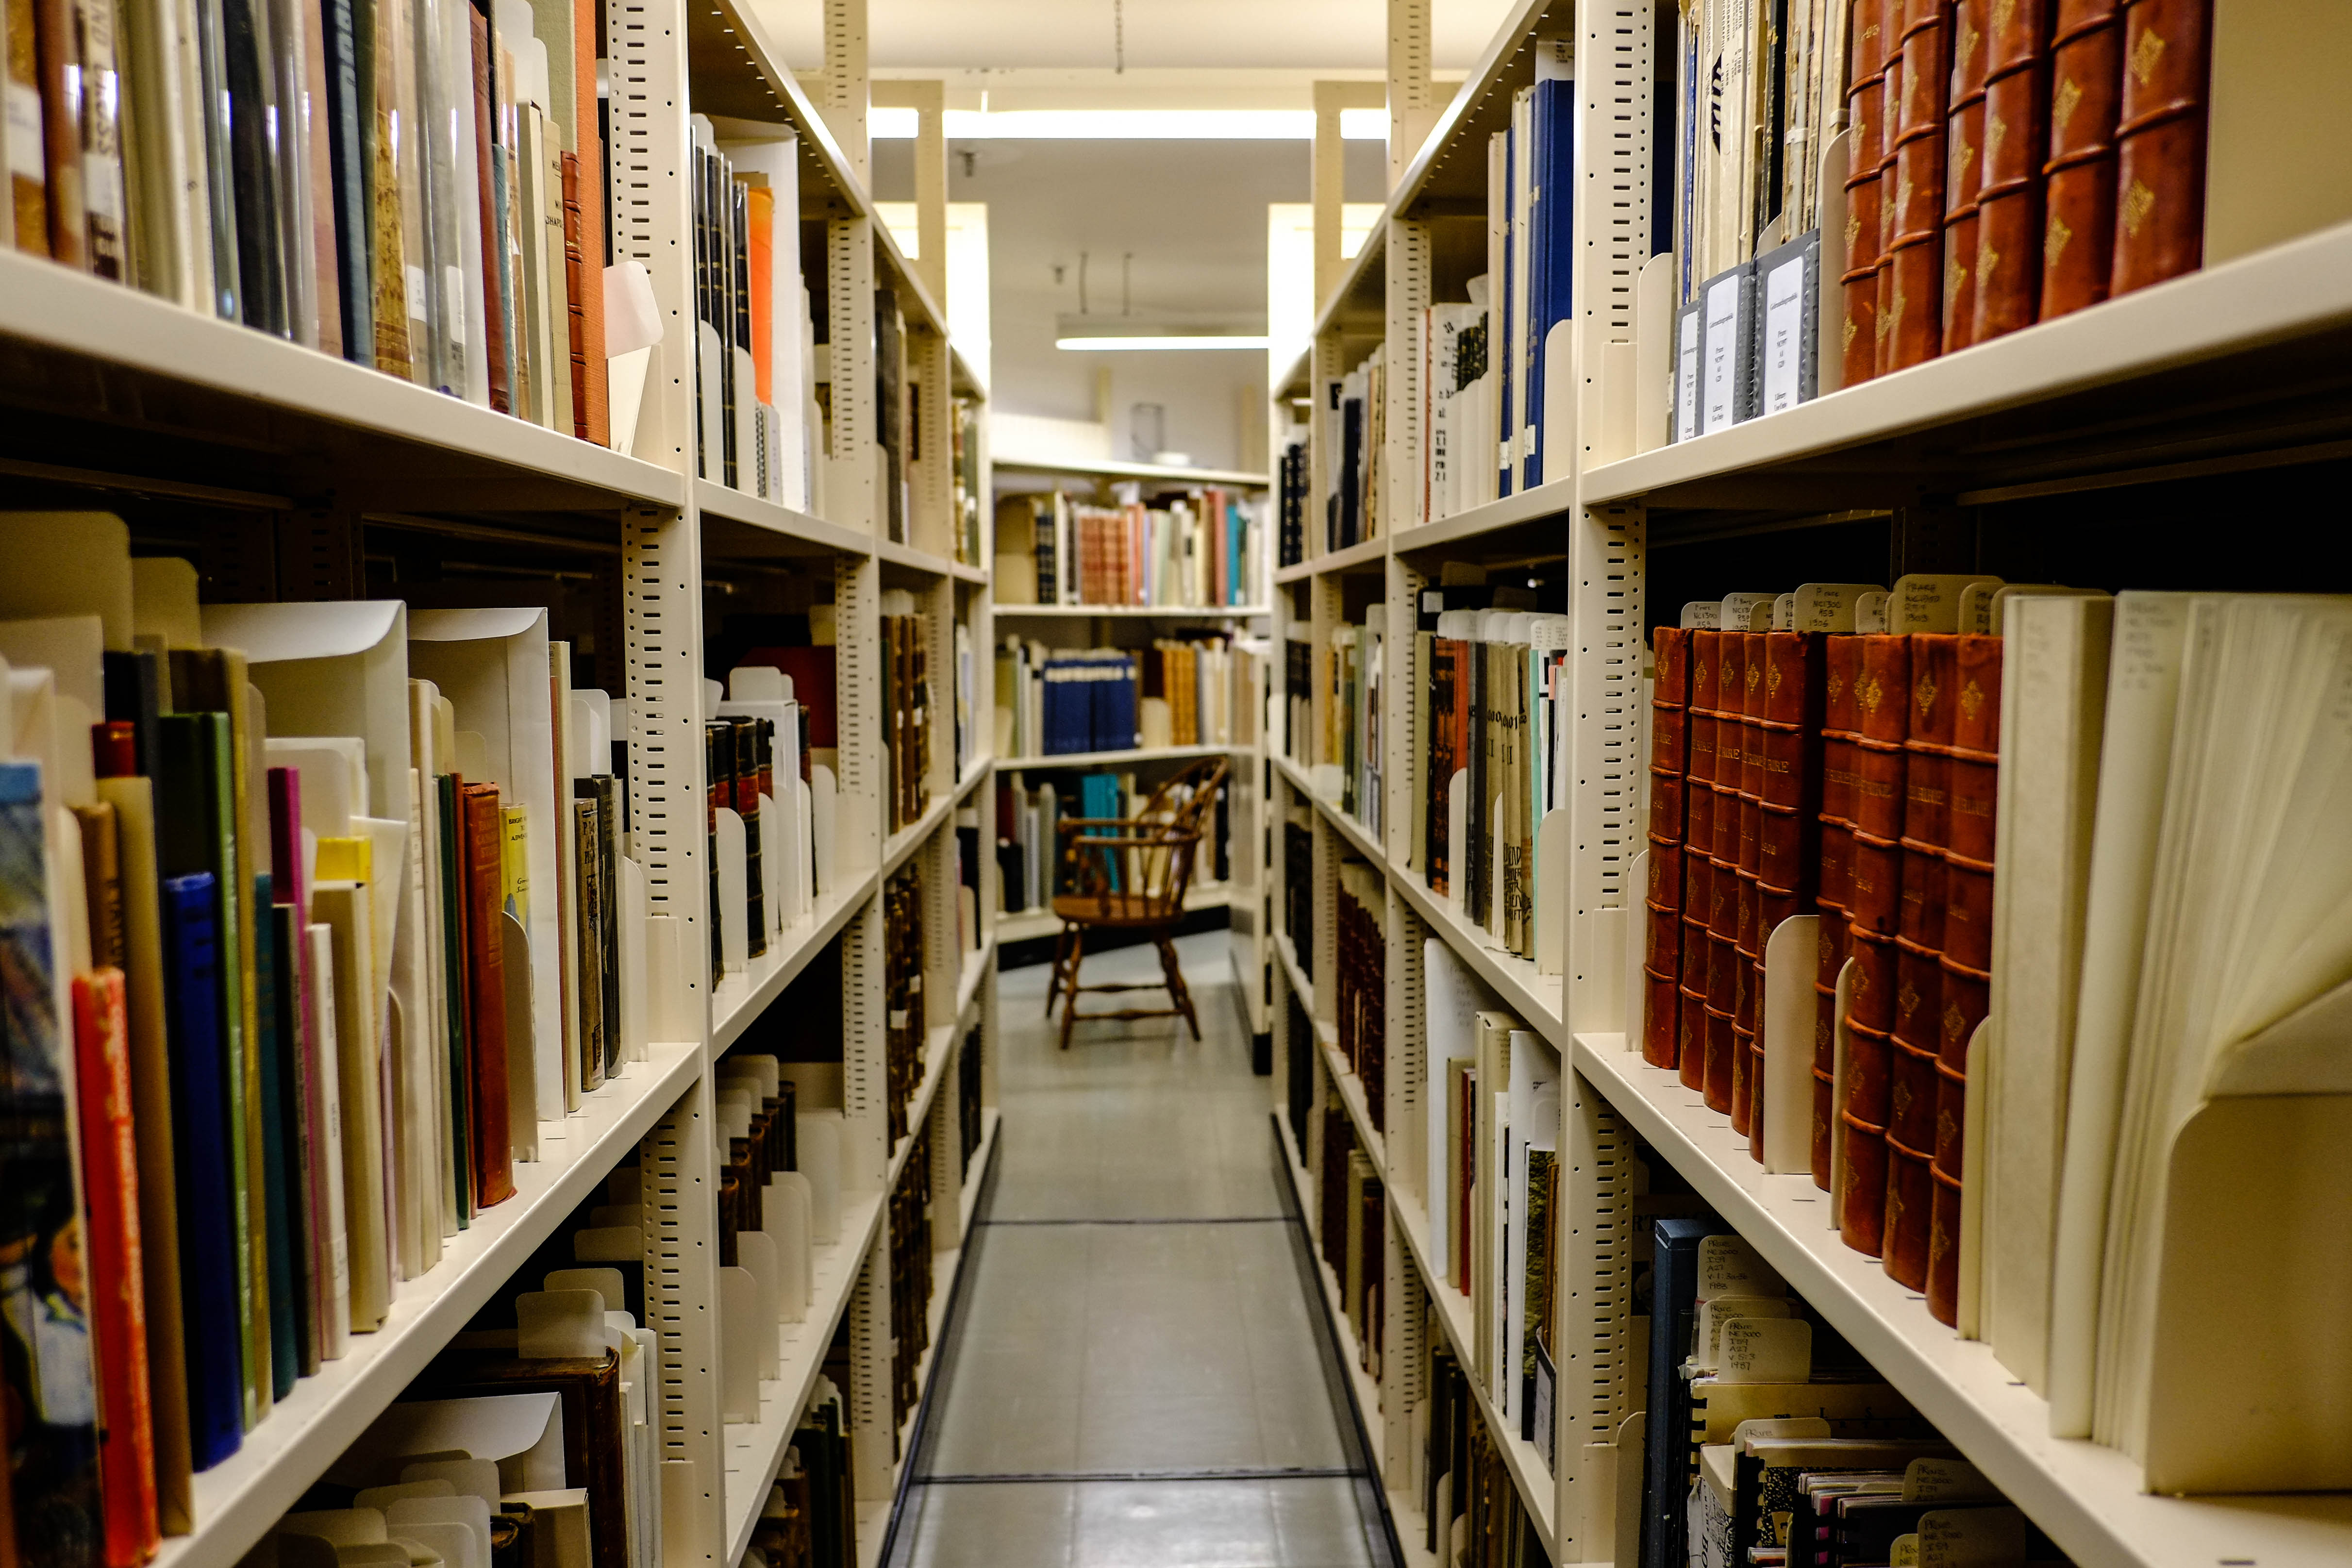 mcgill university library thesis Research library dissertations and theses ebscohost - click on choose databases at top quick links mcgill university mcgill library everything you need.